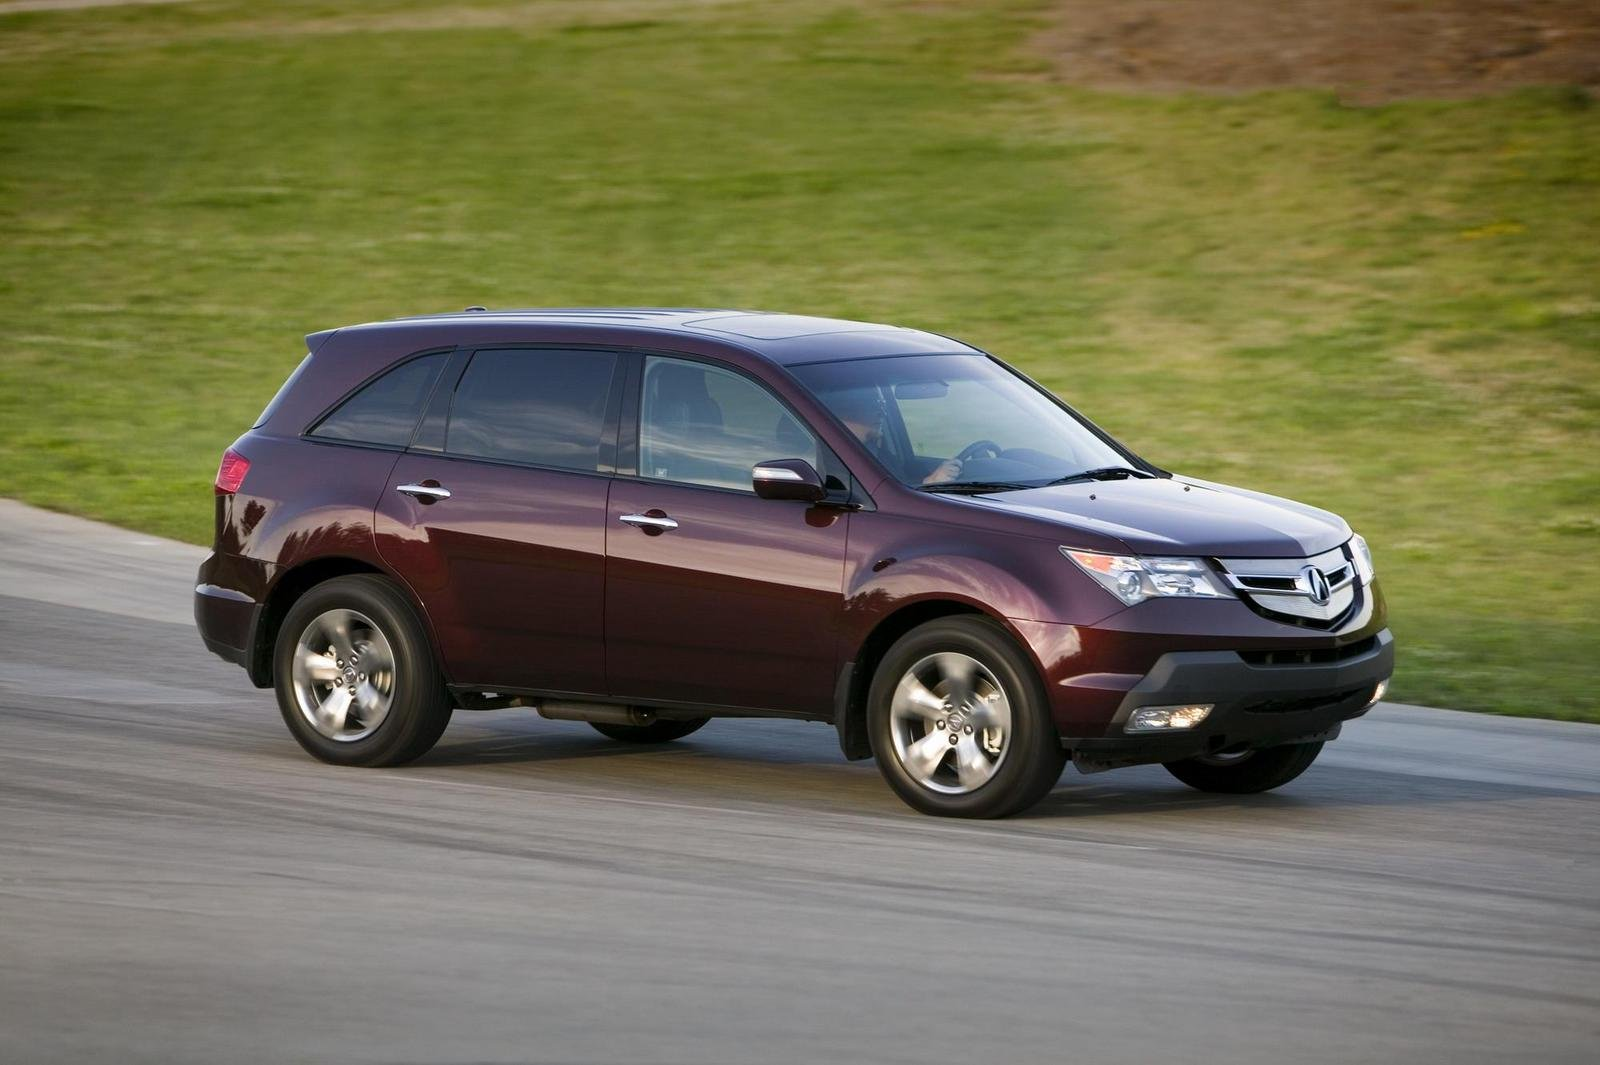 2009 acura mdx picture 299839 car review top speed. Black Bedroom Furniture Sets. Home Design Ideas